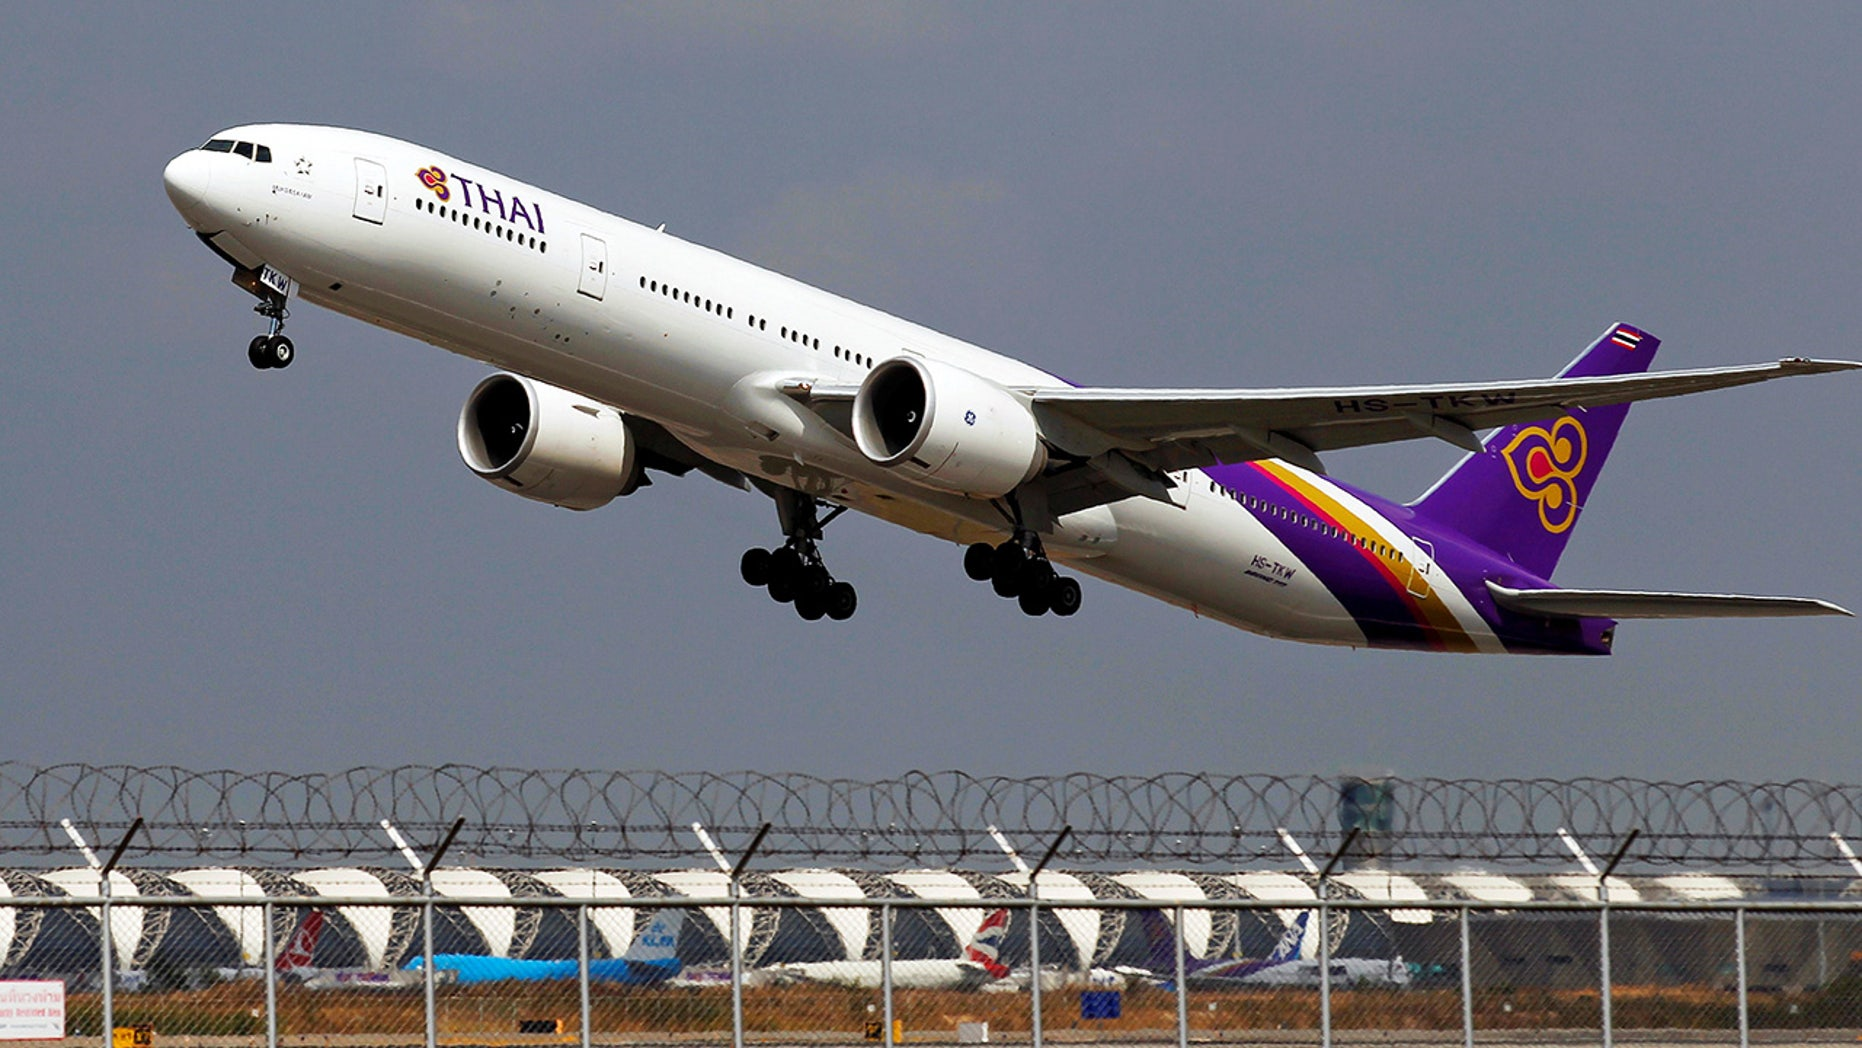 A Thai Airways passenger was forced to pay a name change fee after the online system would not let him type in his full name.